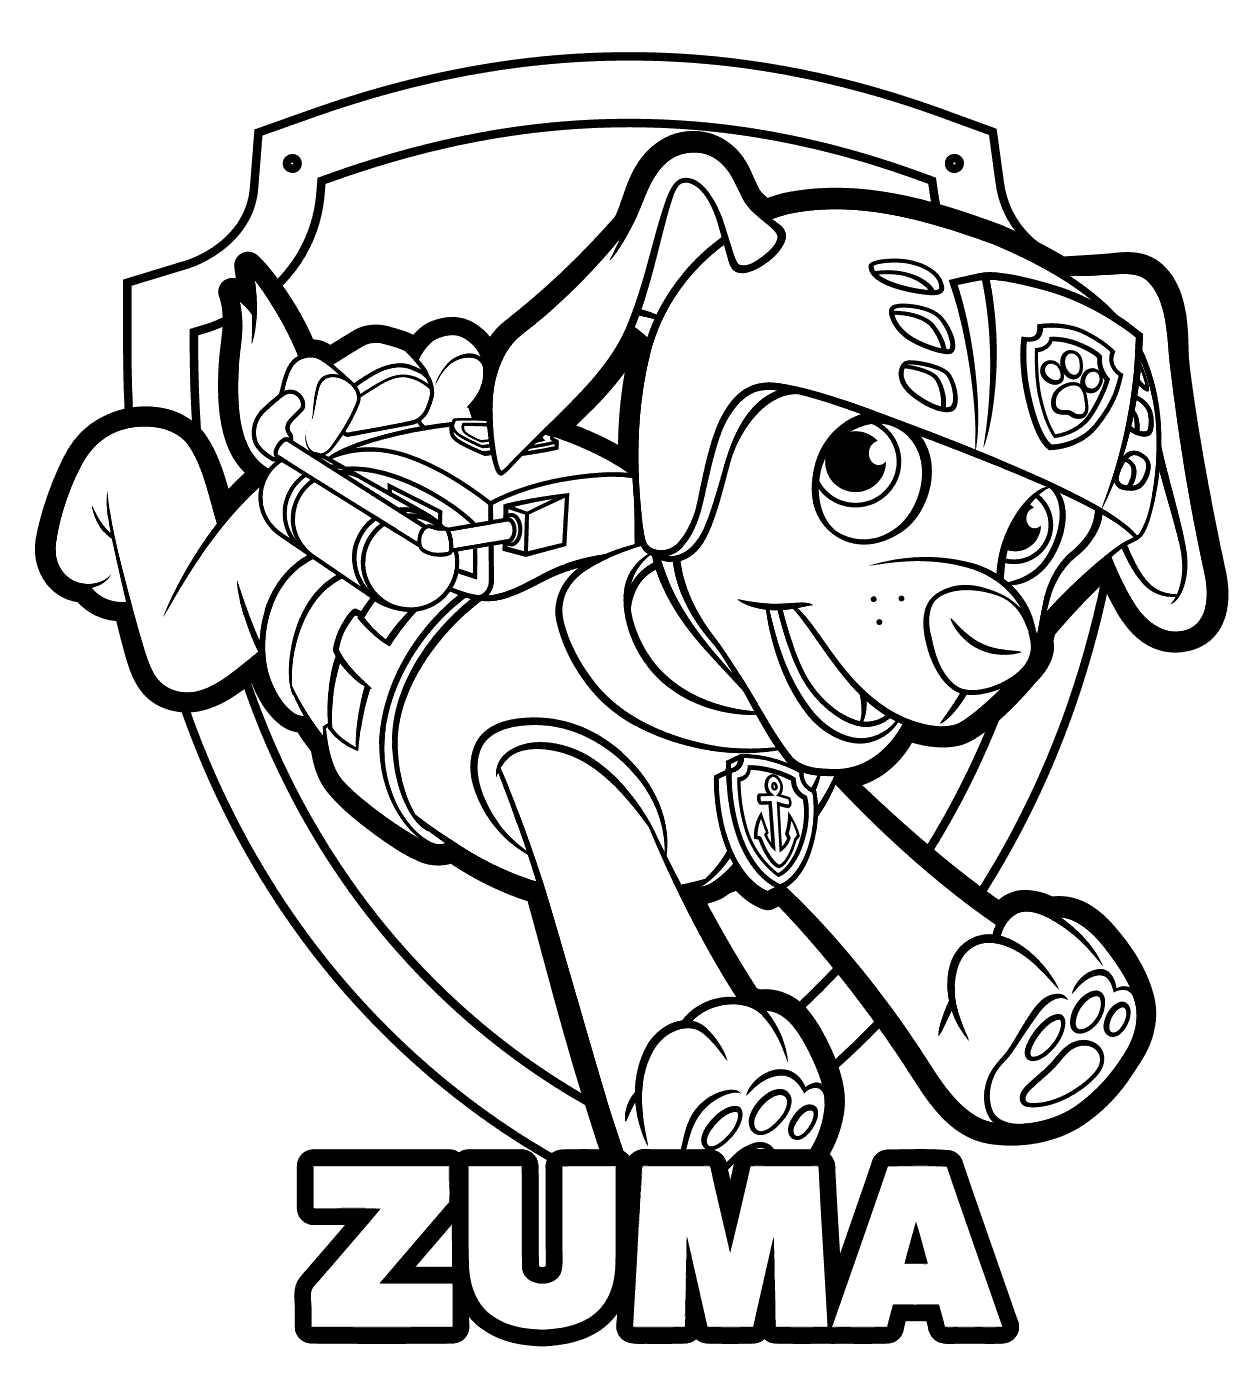 paw patrol coloring pages paw patrol coloring activity book free to use patrol coloring paw pages